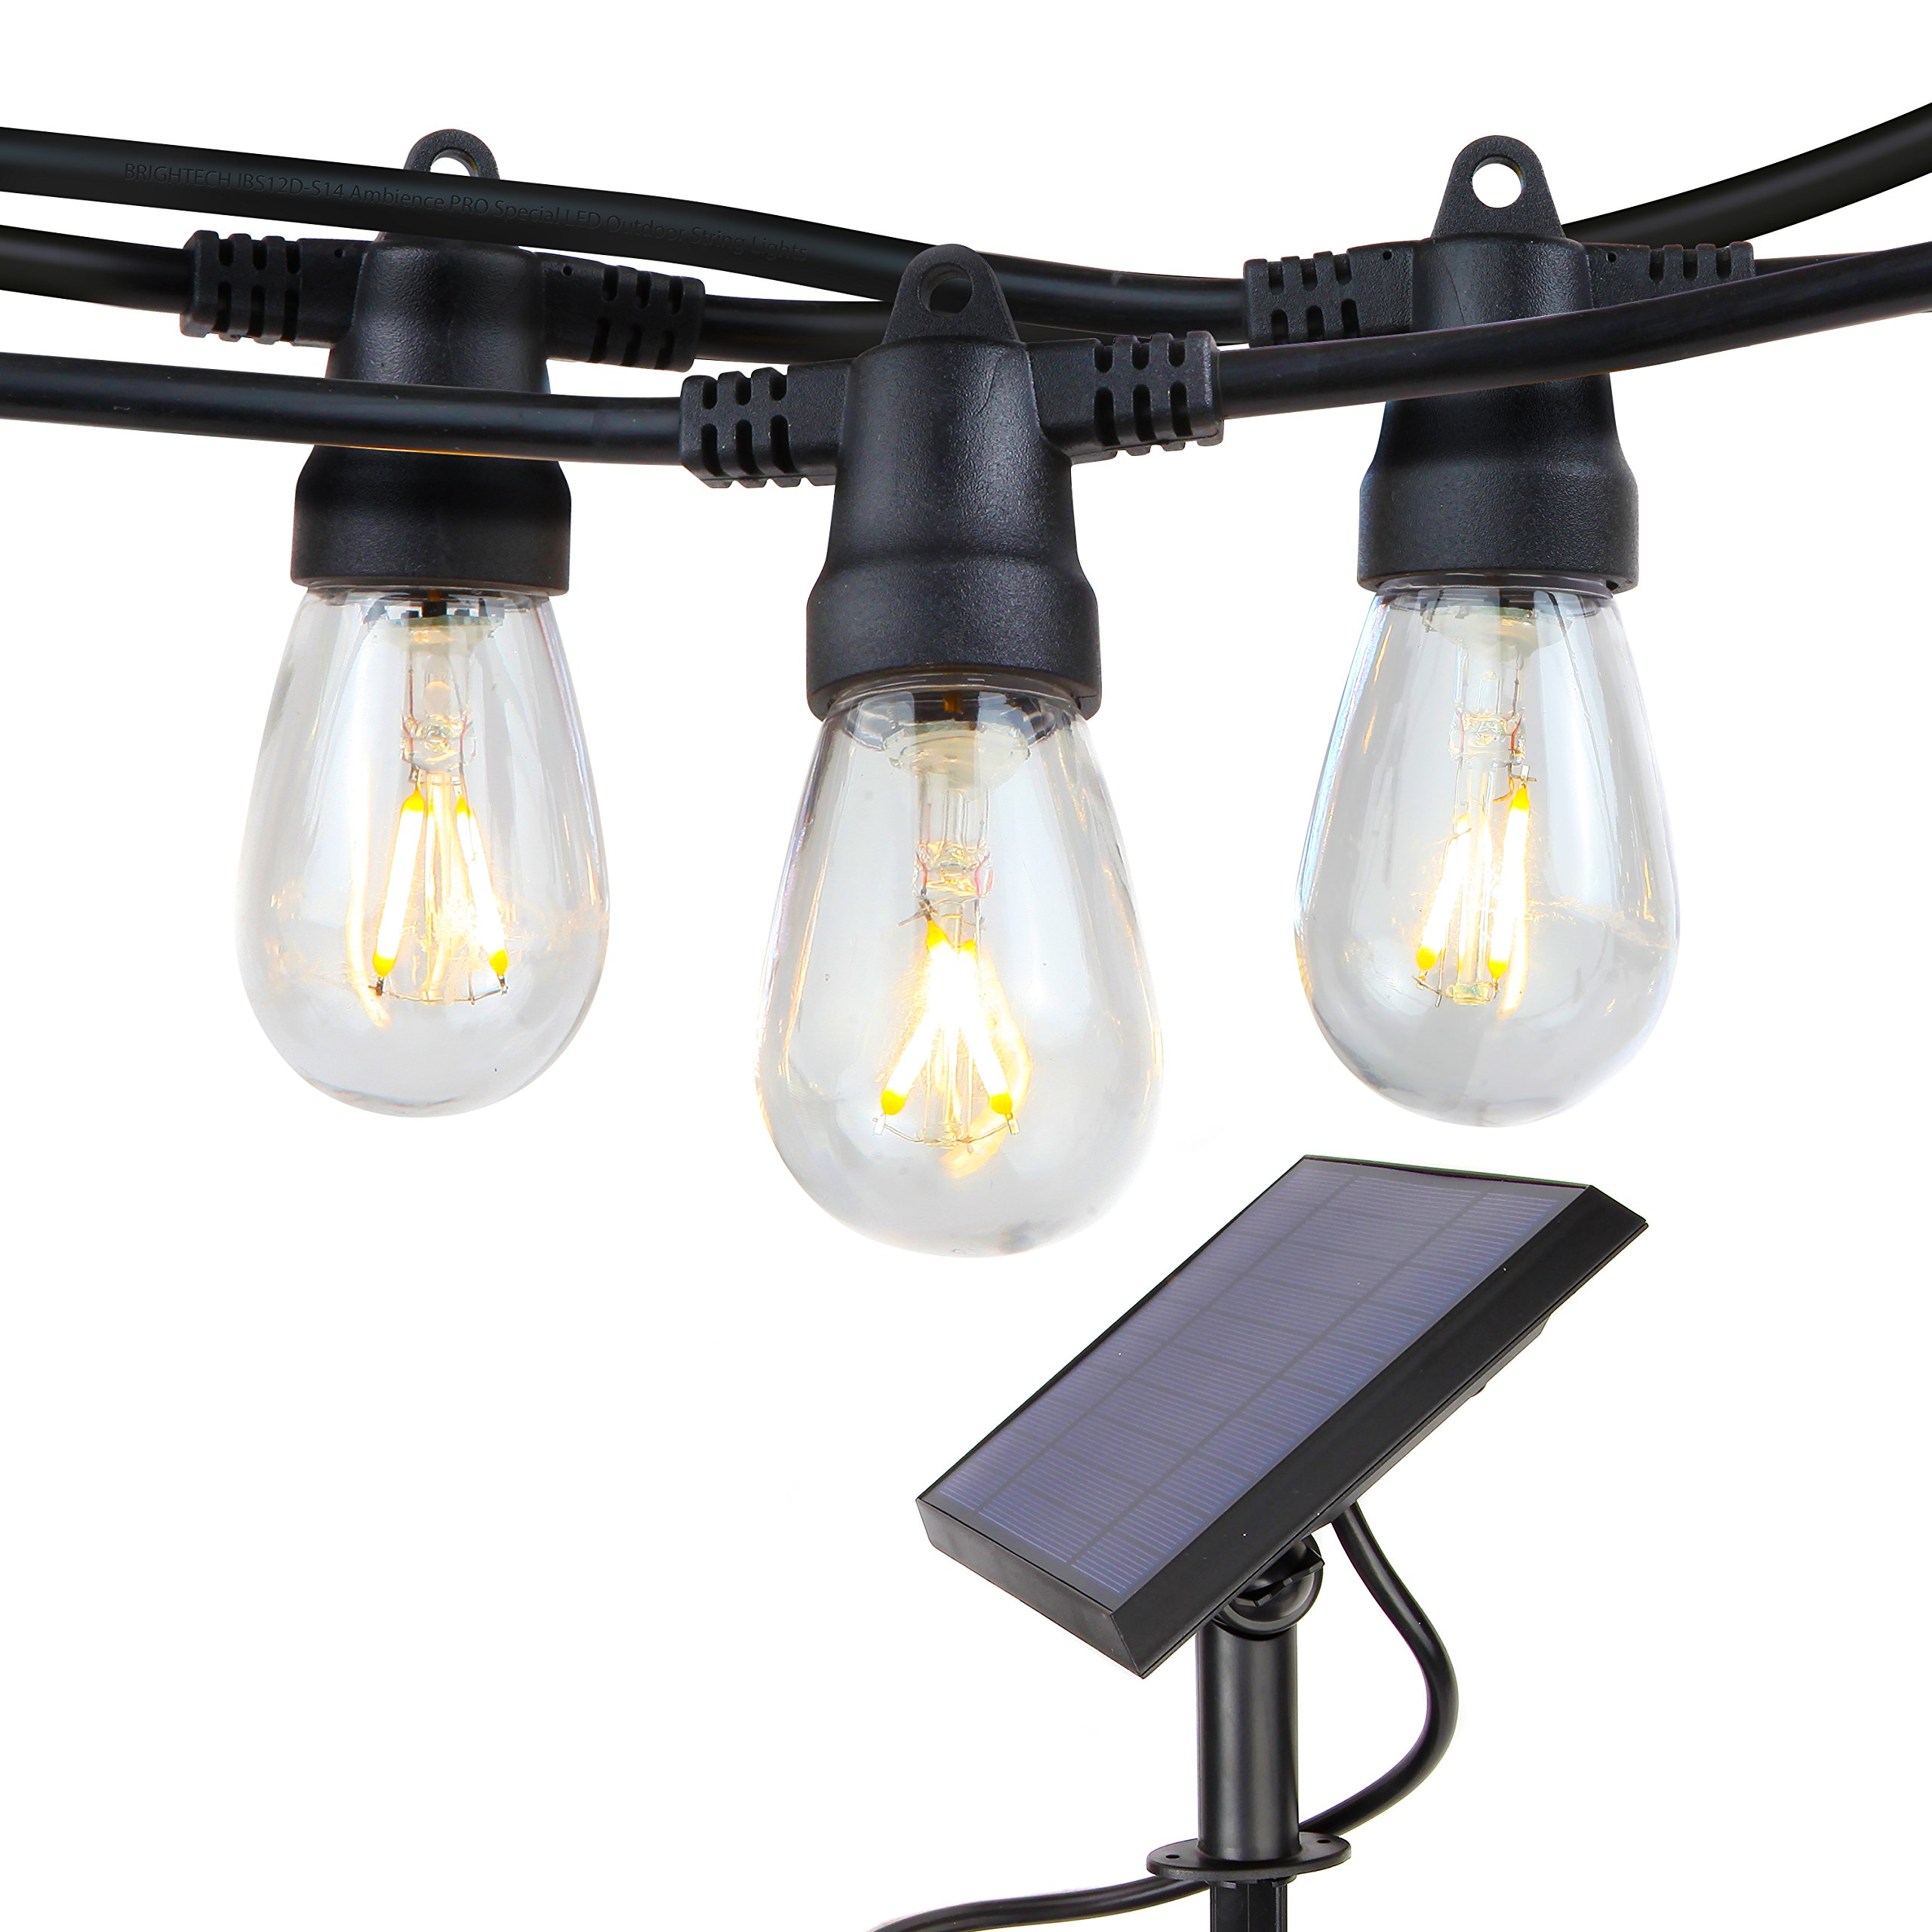 Brightech Ambience Pro Solar Powered LED Outdoor String Lights – Commercial Grade, Waterproof Patio Lights With Edison Bulbs– 2500 maH Solar Panel, 2 Watt S14 Filaments- Heavy Duty Cafe Bistro -24ft